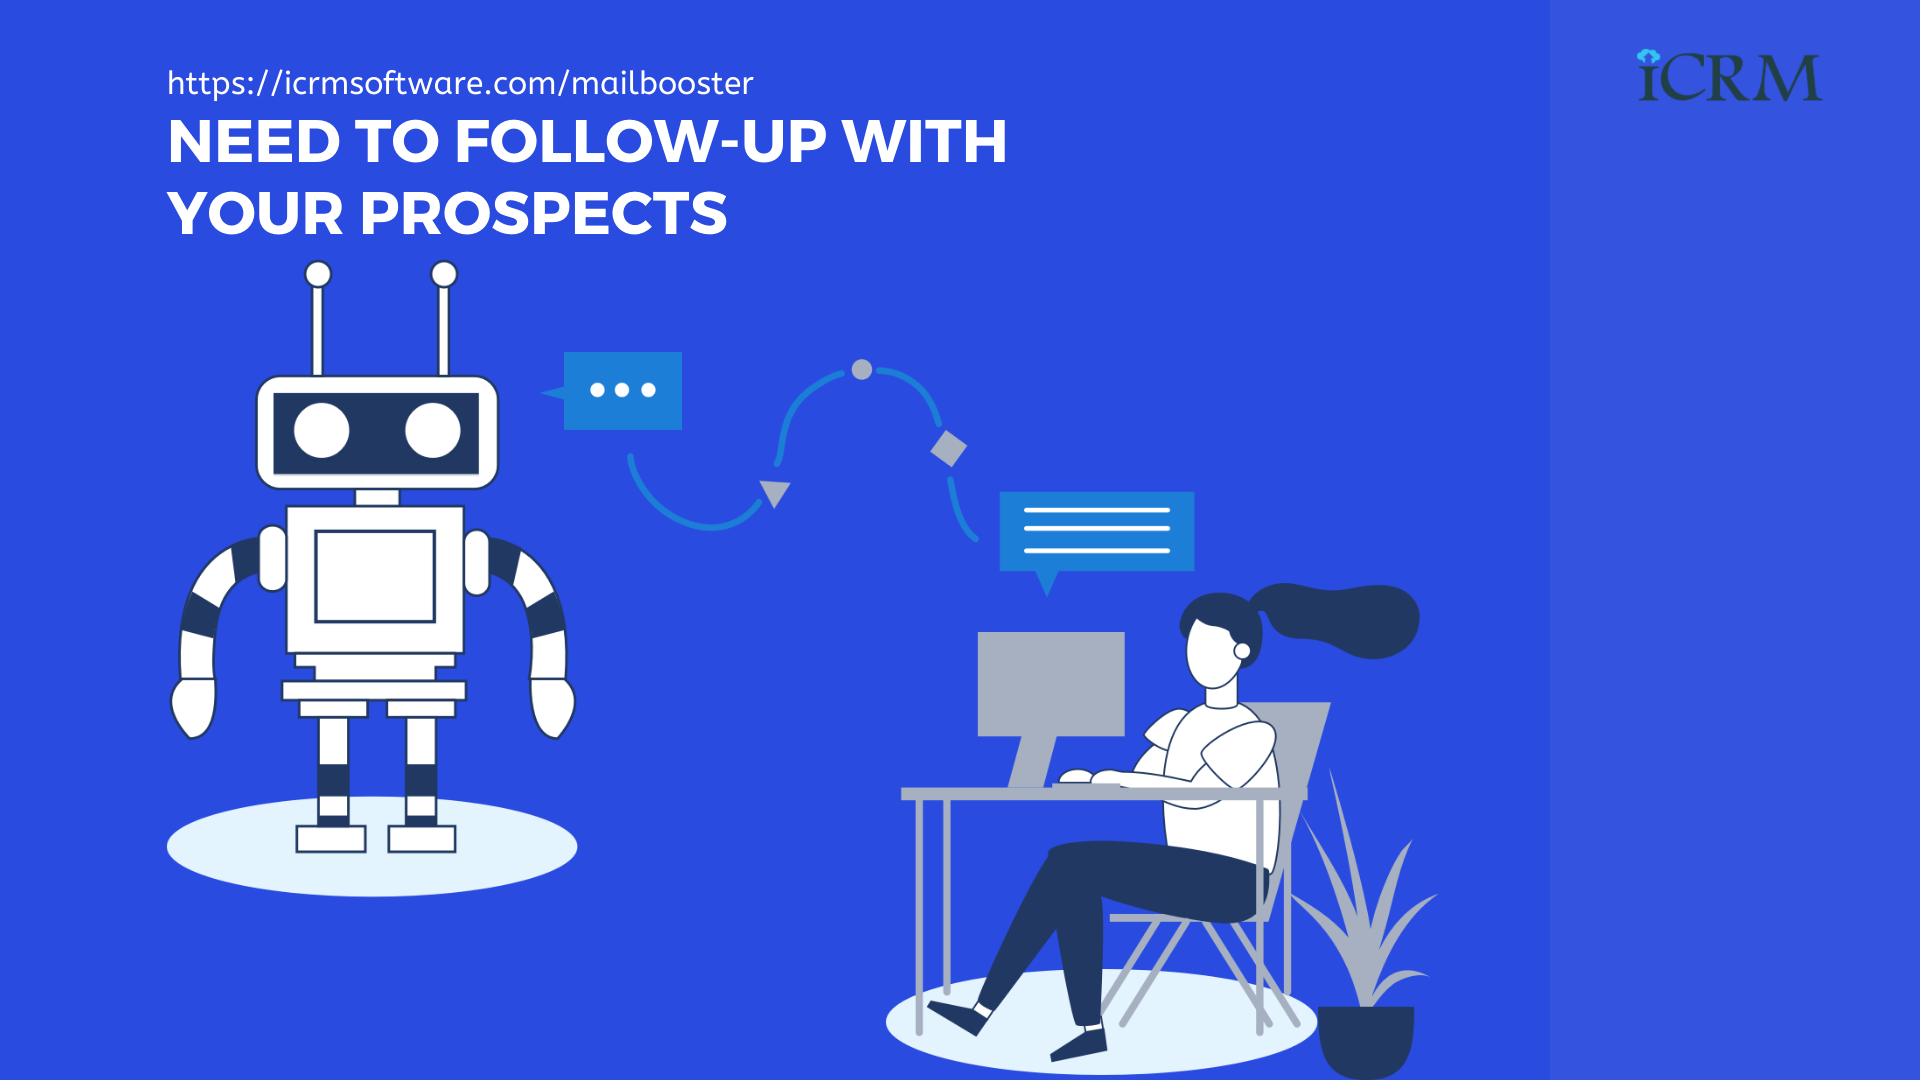 Need to follow-up with your prospects? ICRM Mailbooster - AI-Based Email Marketing Application